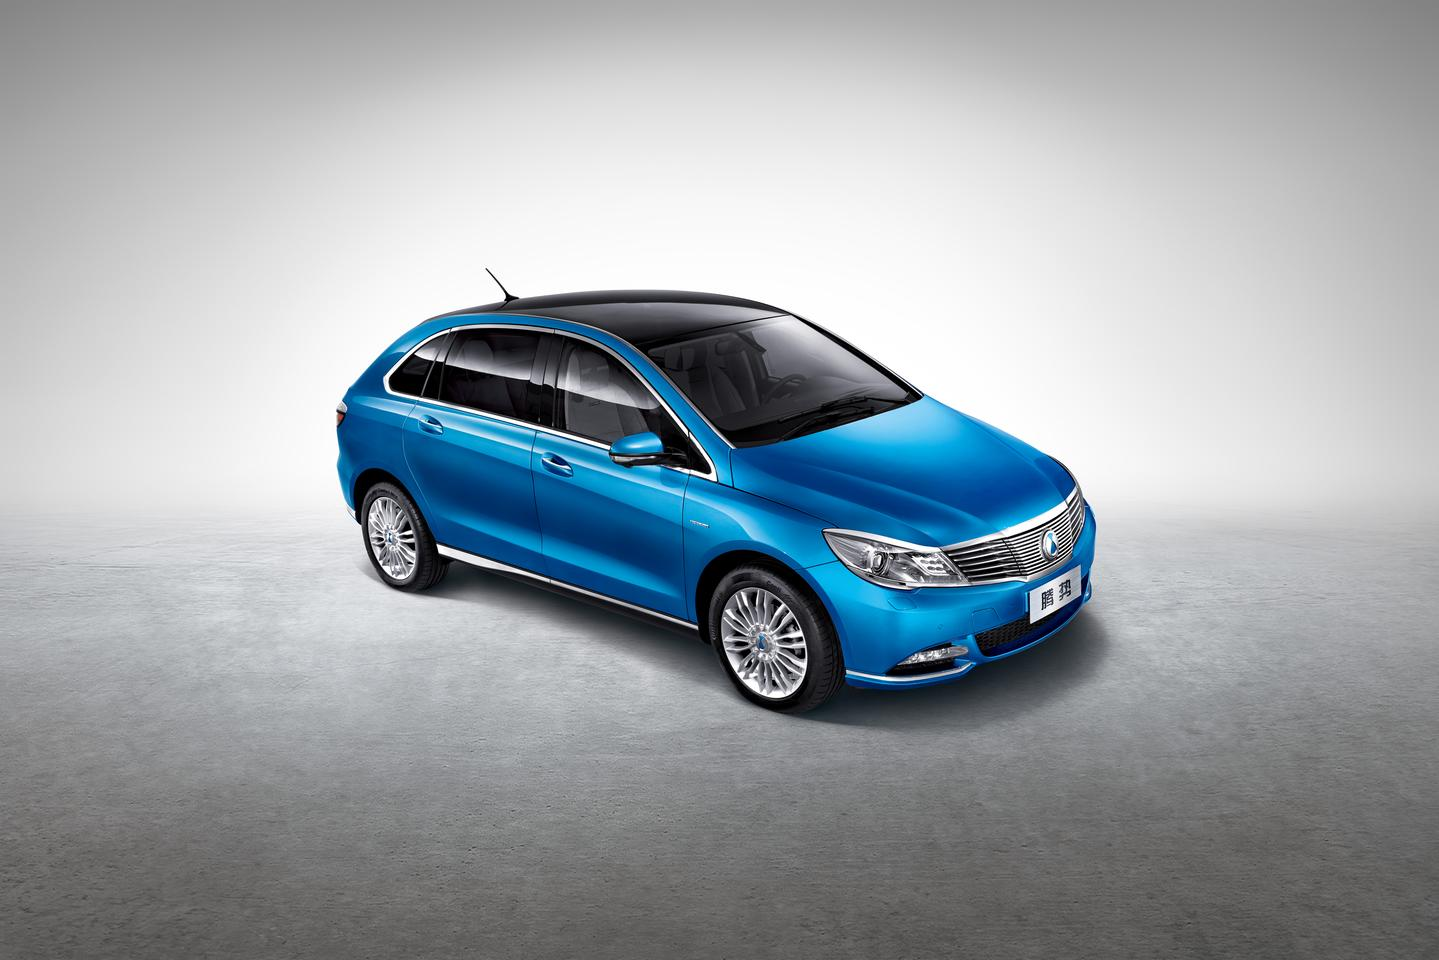 The Denza is the first all-electric produced by a Sino-German partnership